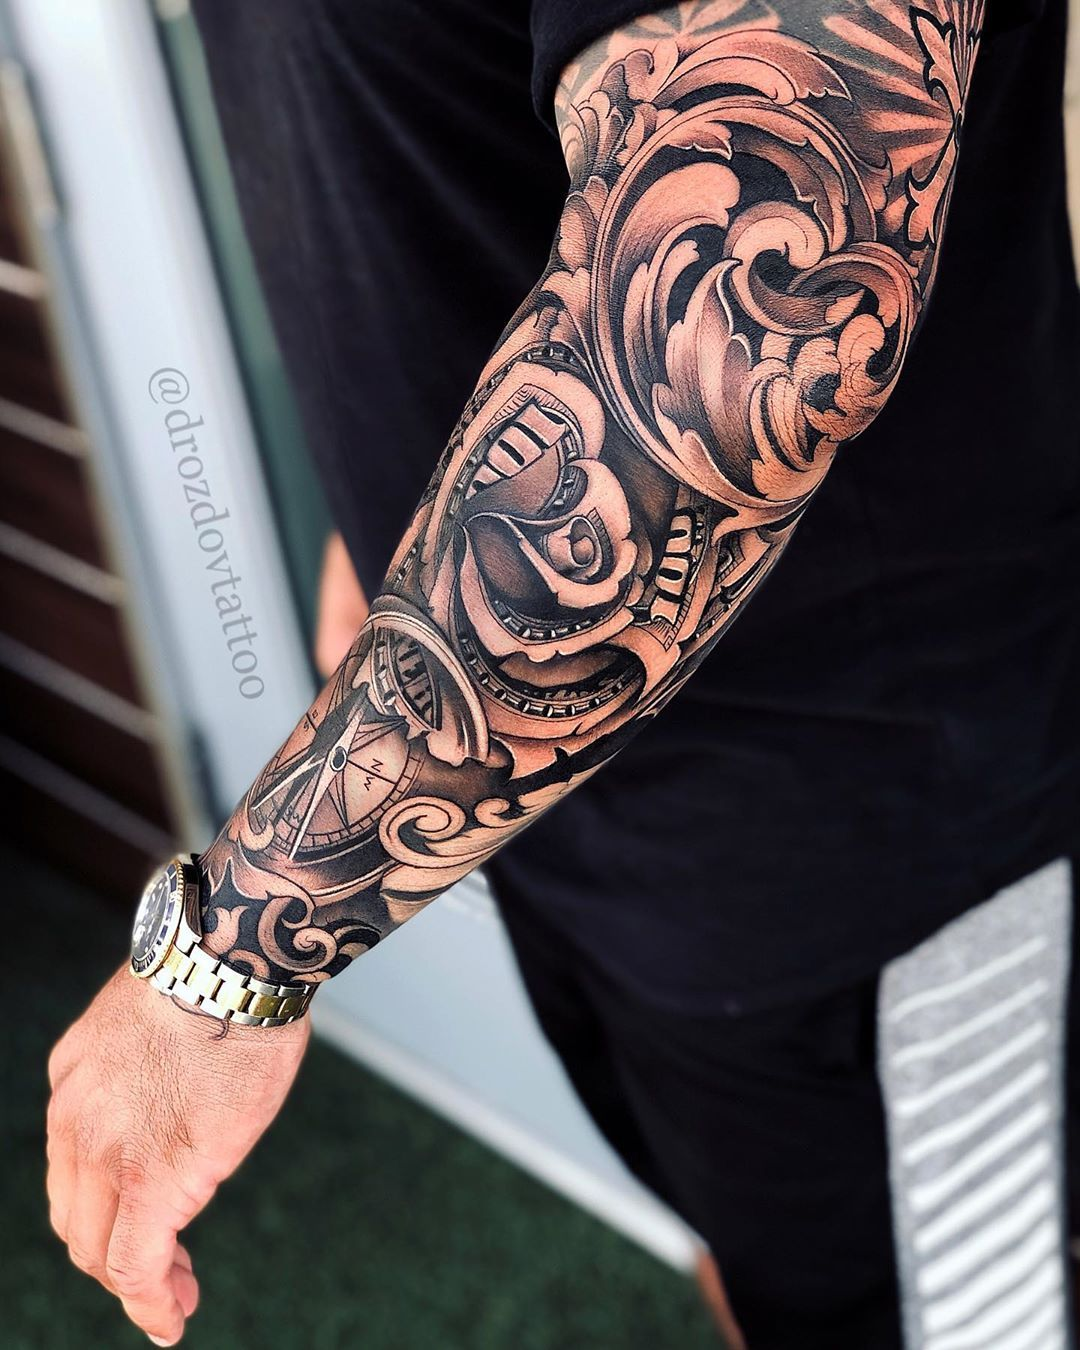 Image May Contain One Or More People And Closeup Tattoo Sleeve Designs Rose Tattoo Sleeve Forearm Tattoo Men